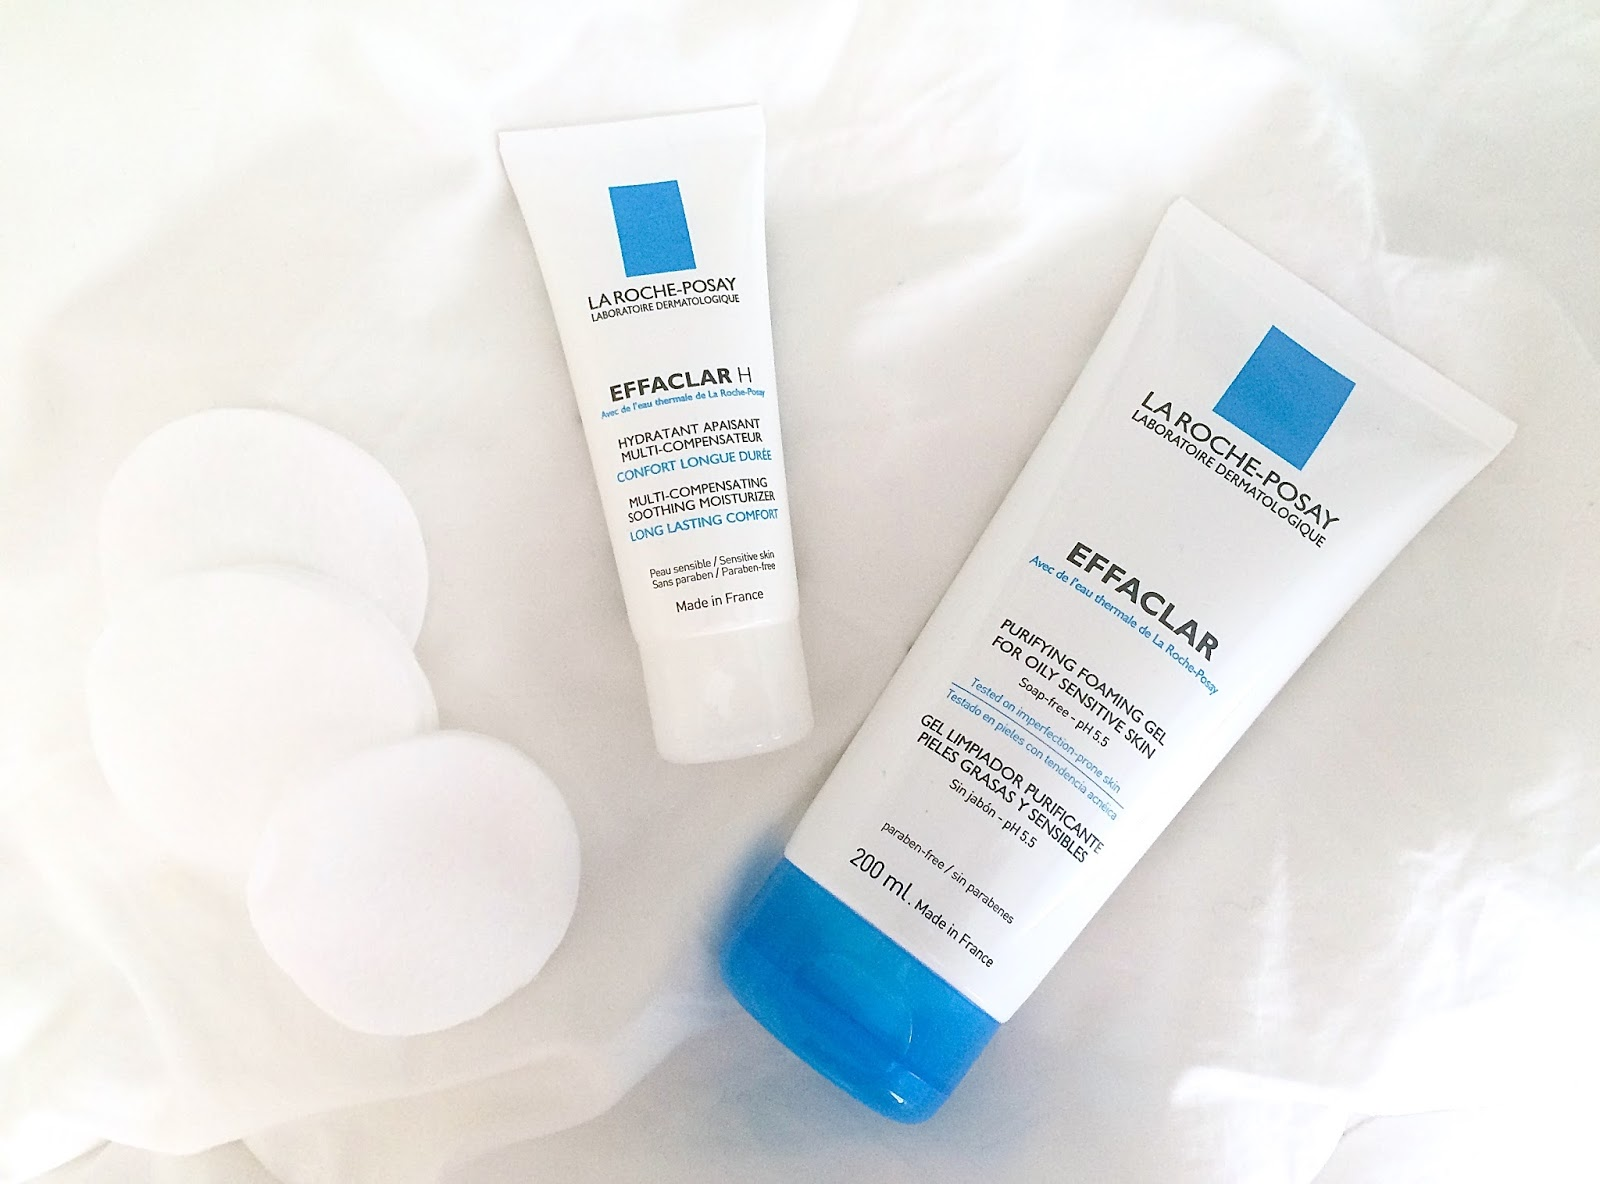 Products from my La Roche-Posay skincare routine